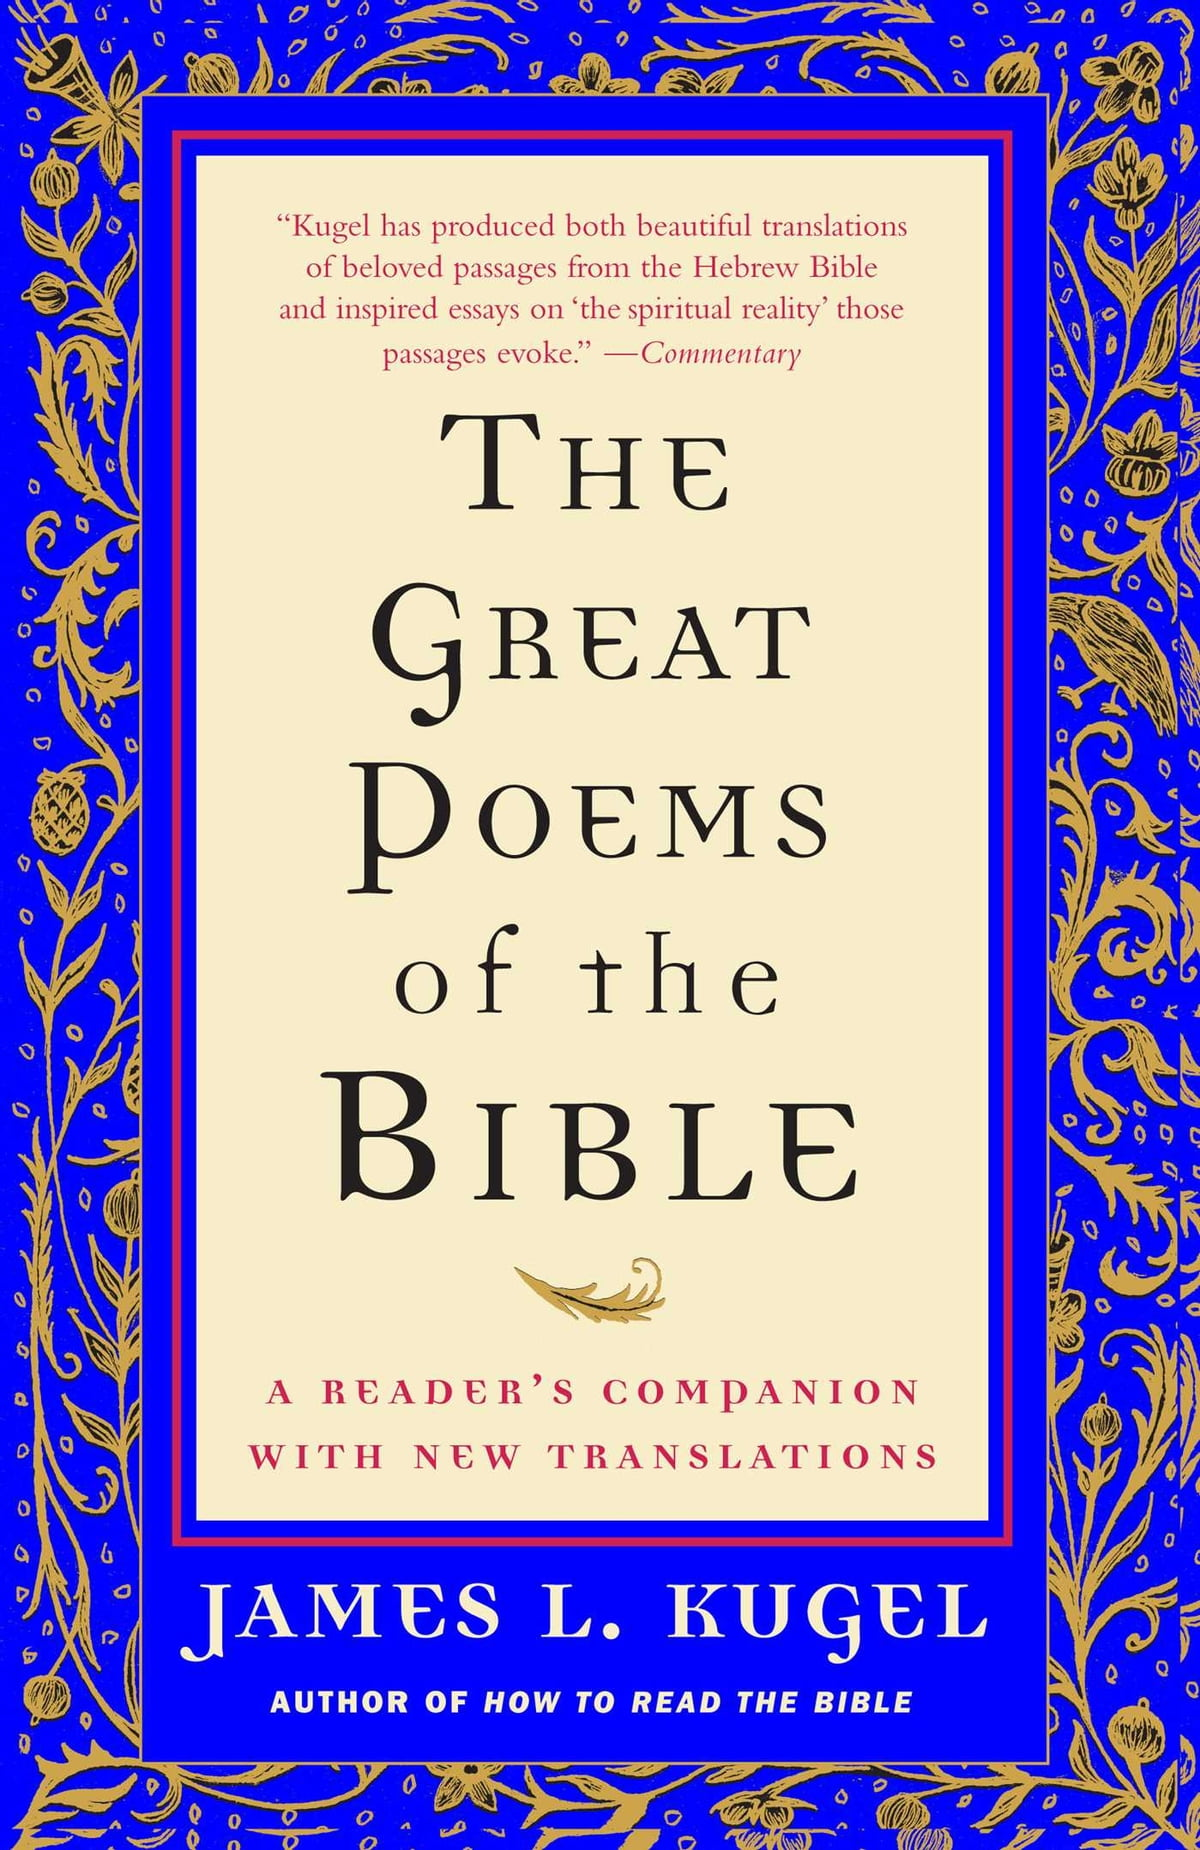 The Great Poems Of The Bible Ebook By James L Kugel border=